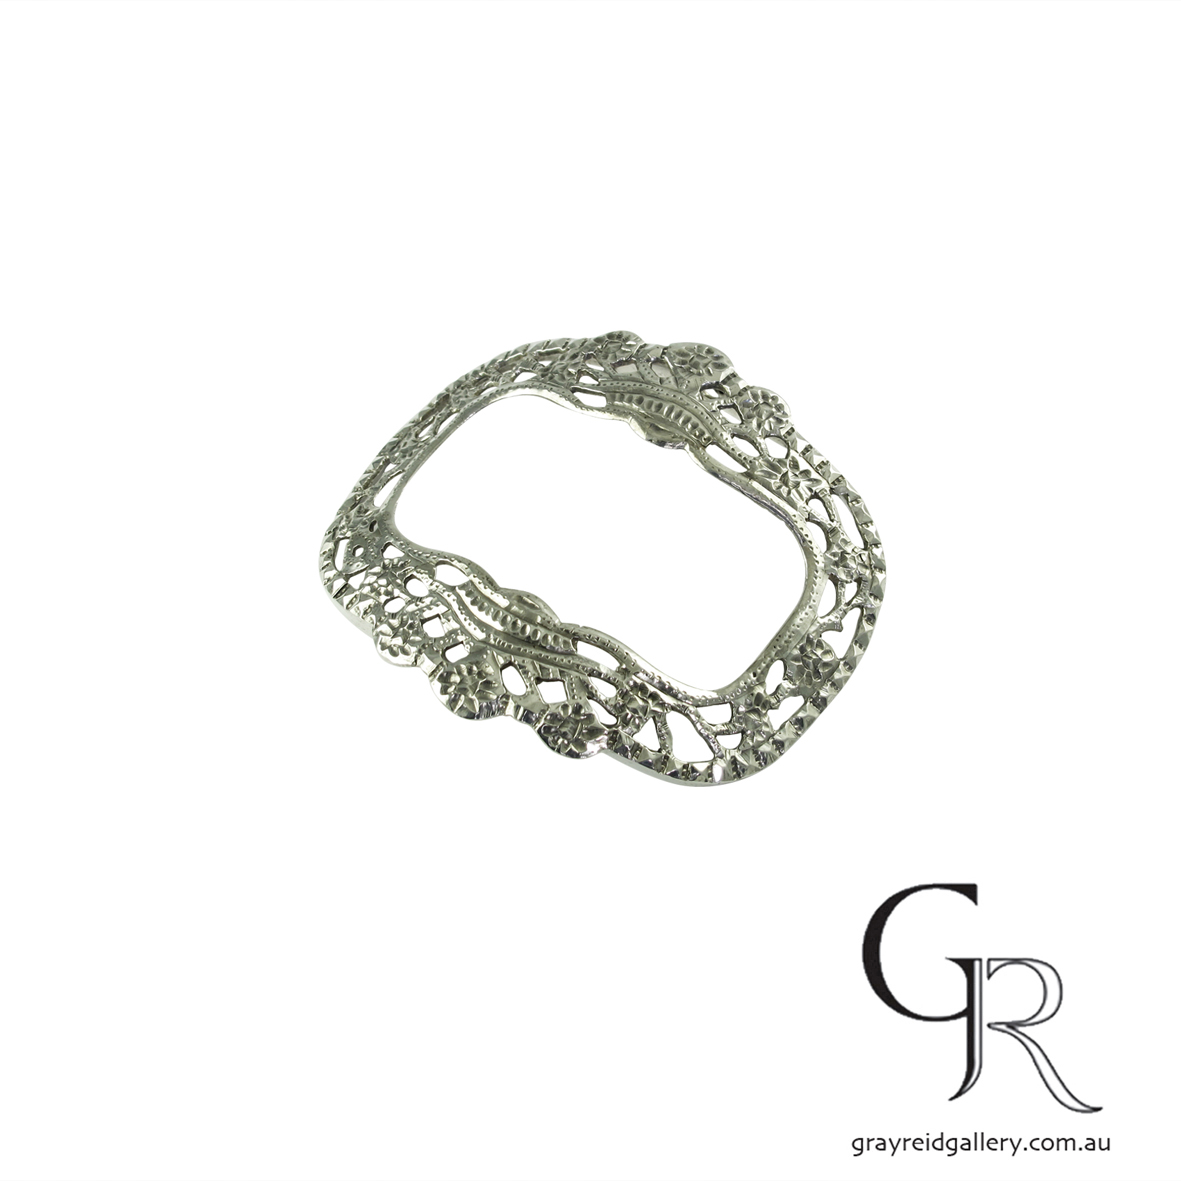 antiques and collectables melbourne sterling silver belt buckle Gray Reid Gallery 14.jpg